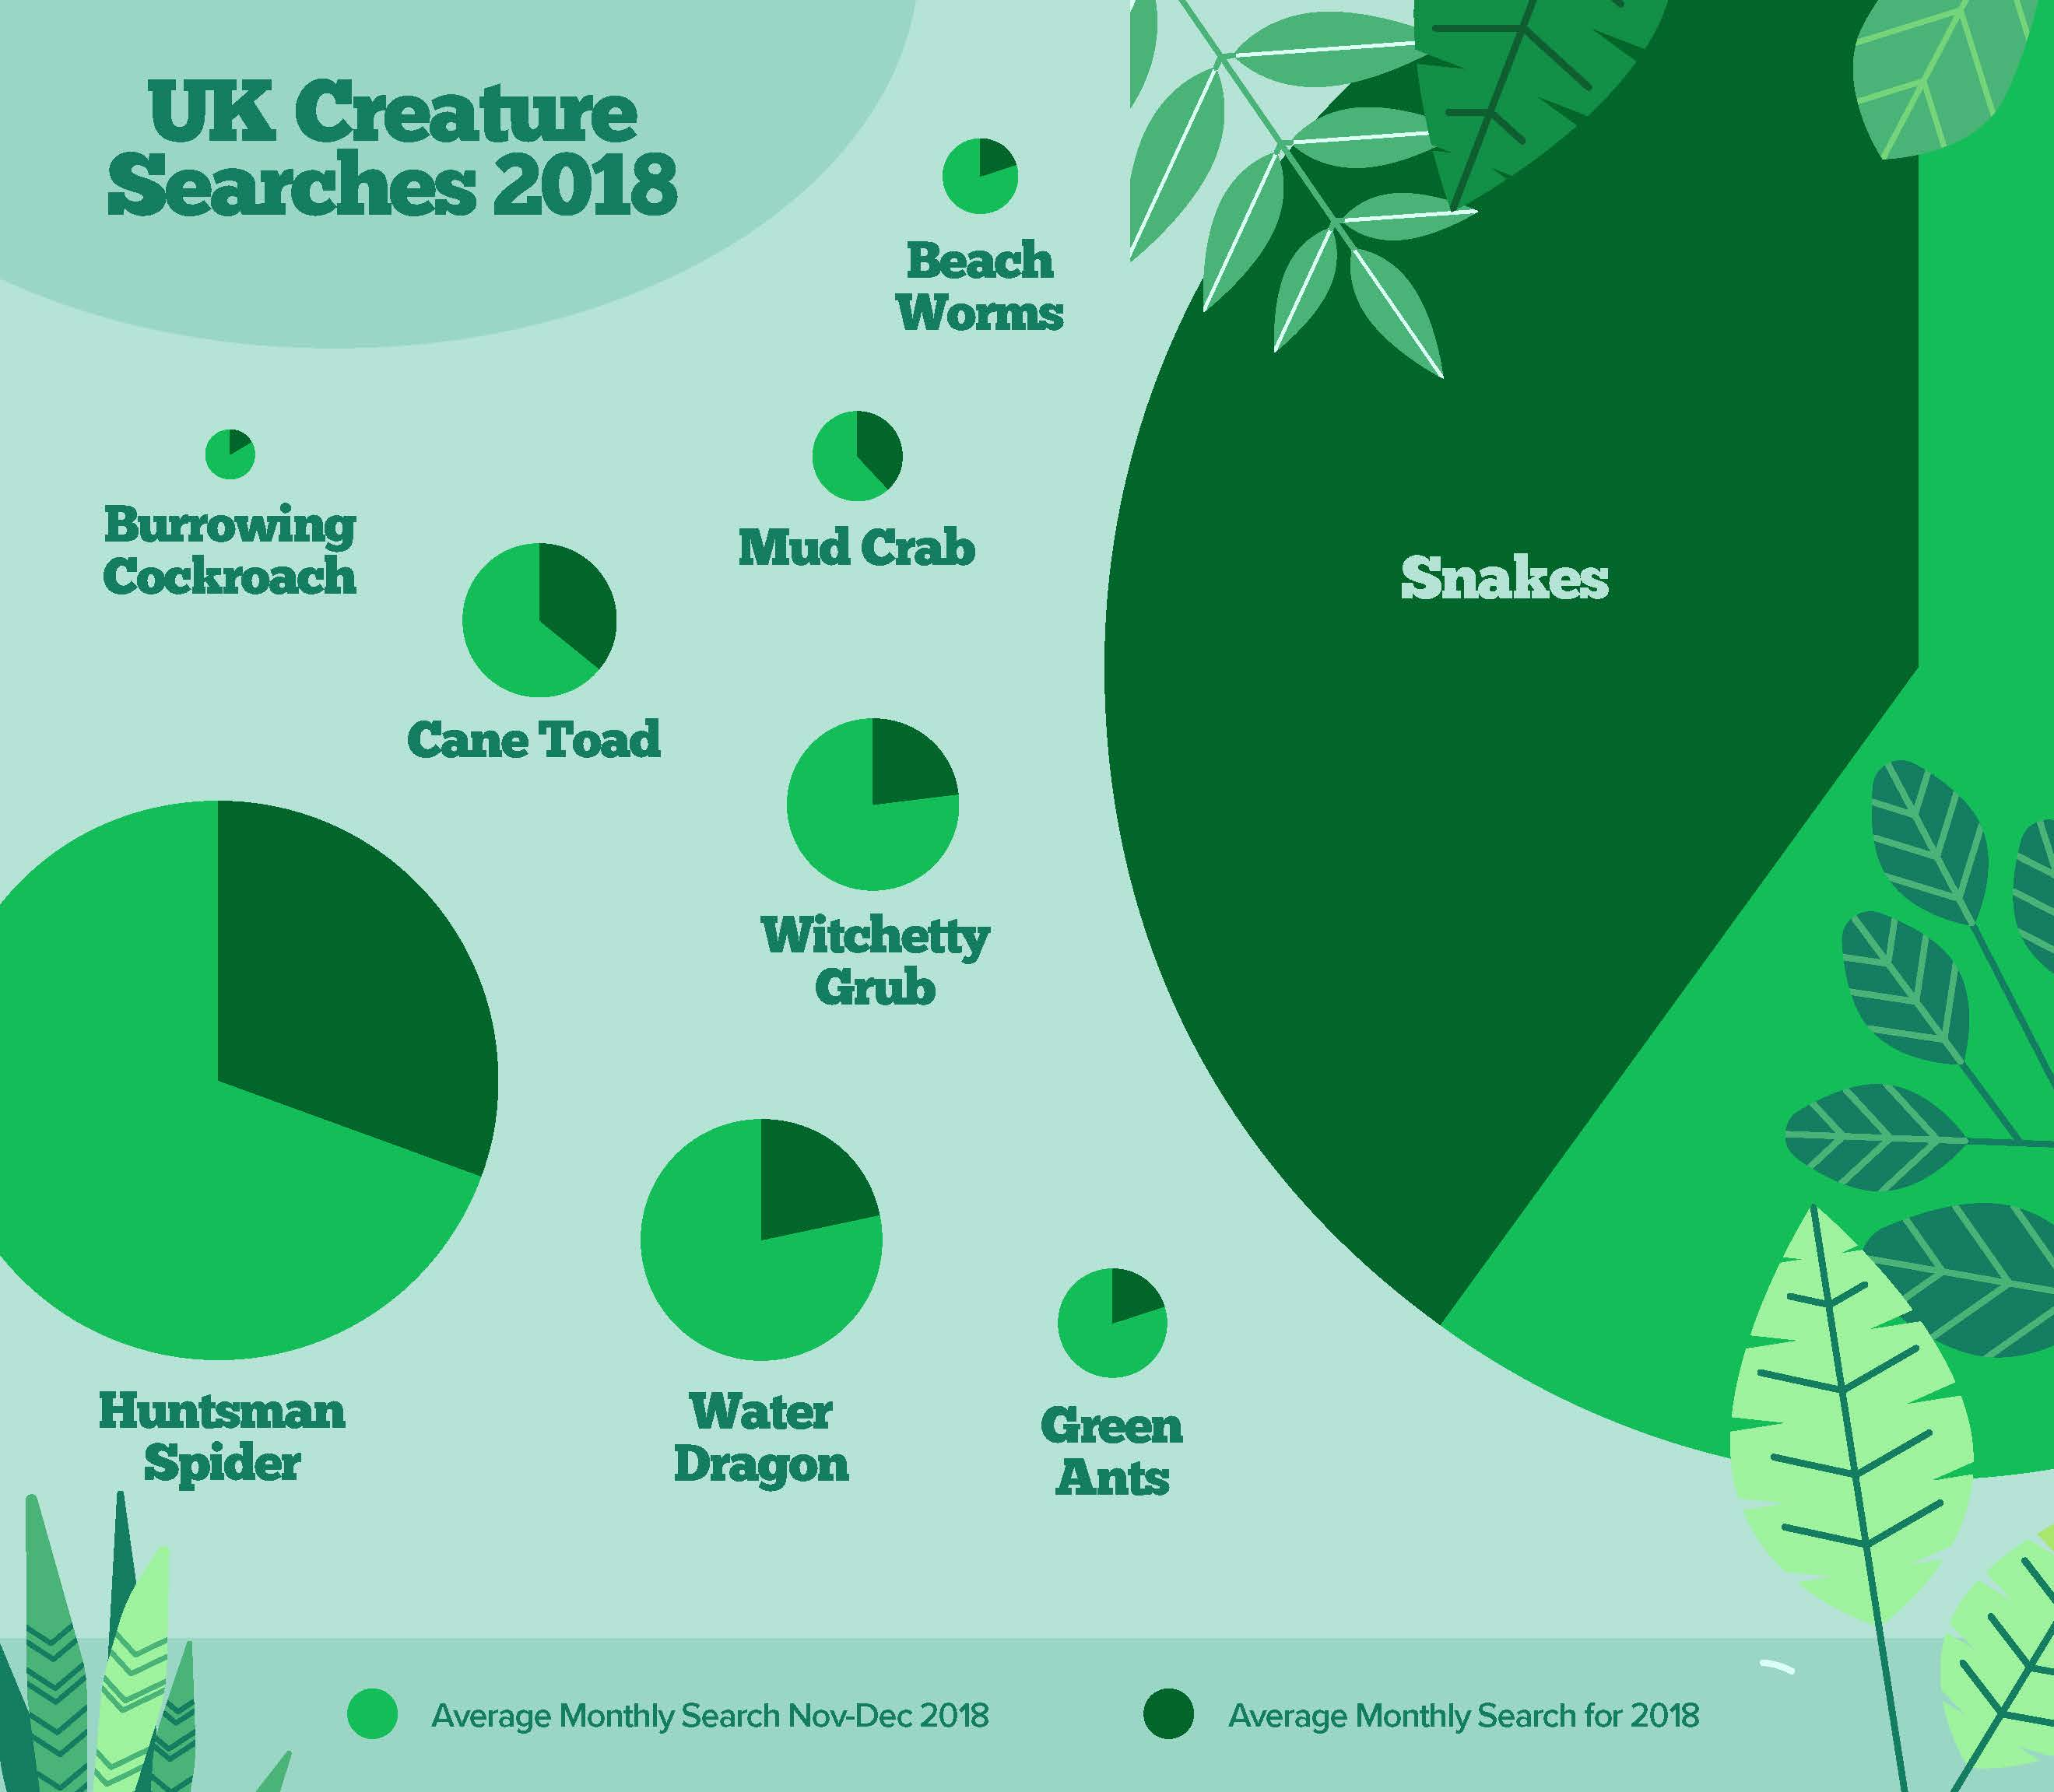 uk creature searches 2018 - bugs in the home